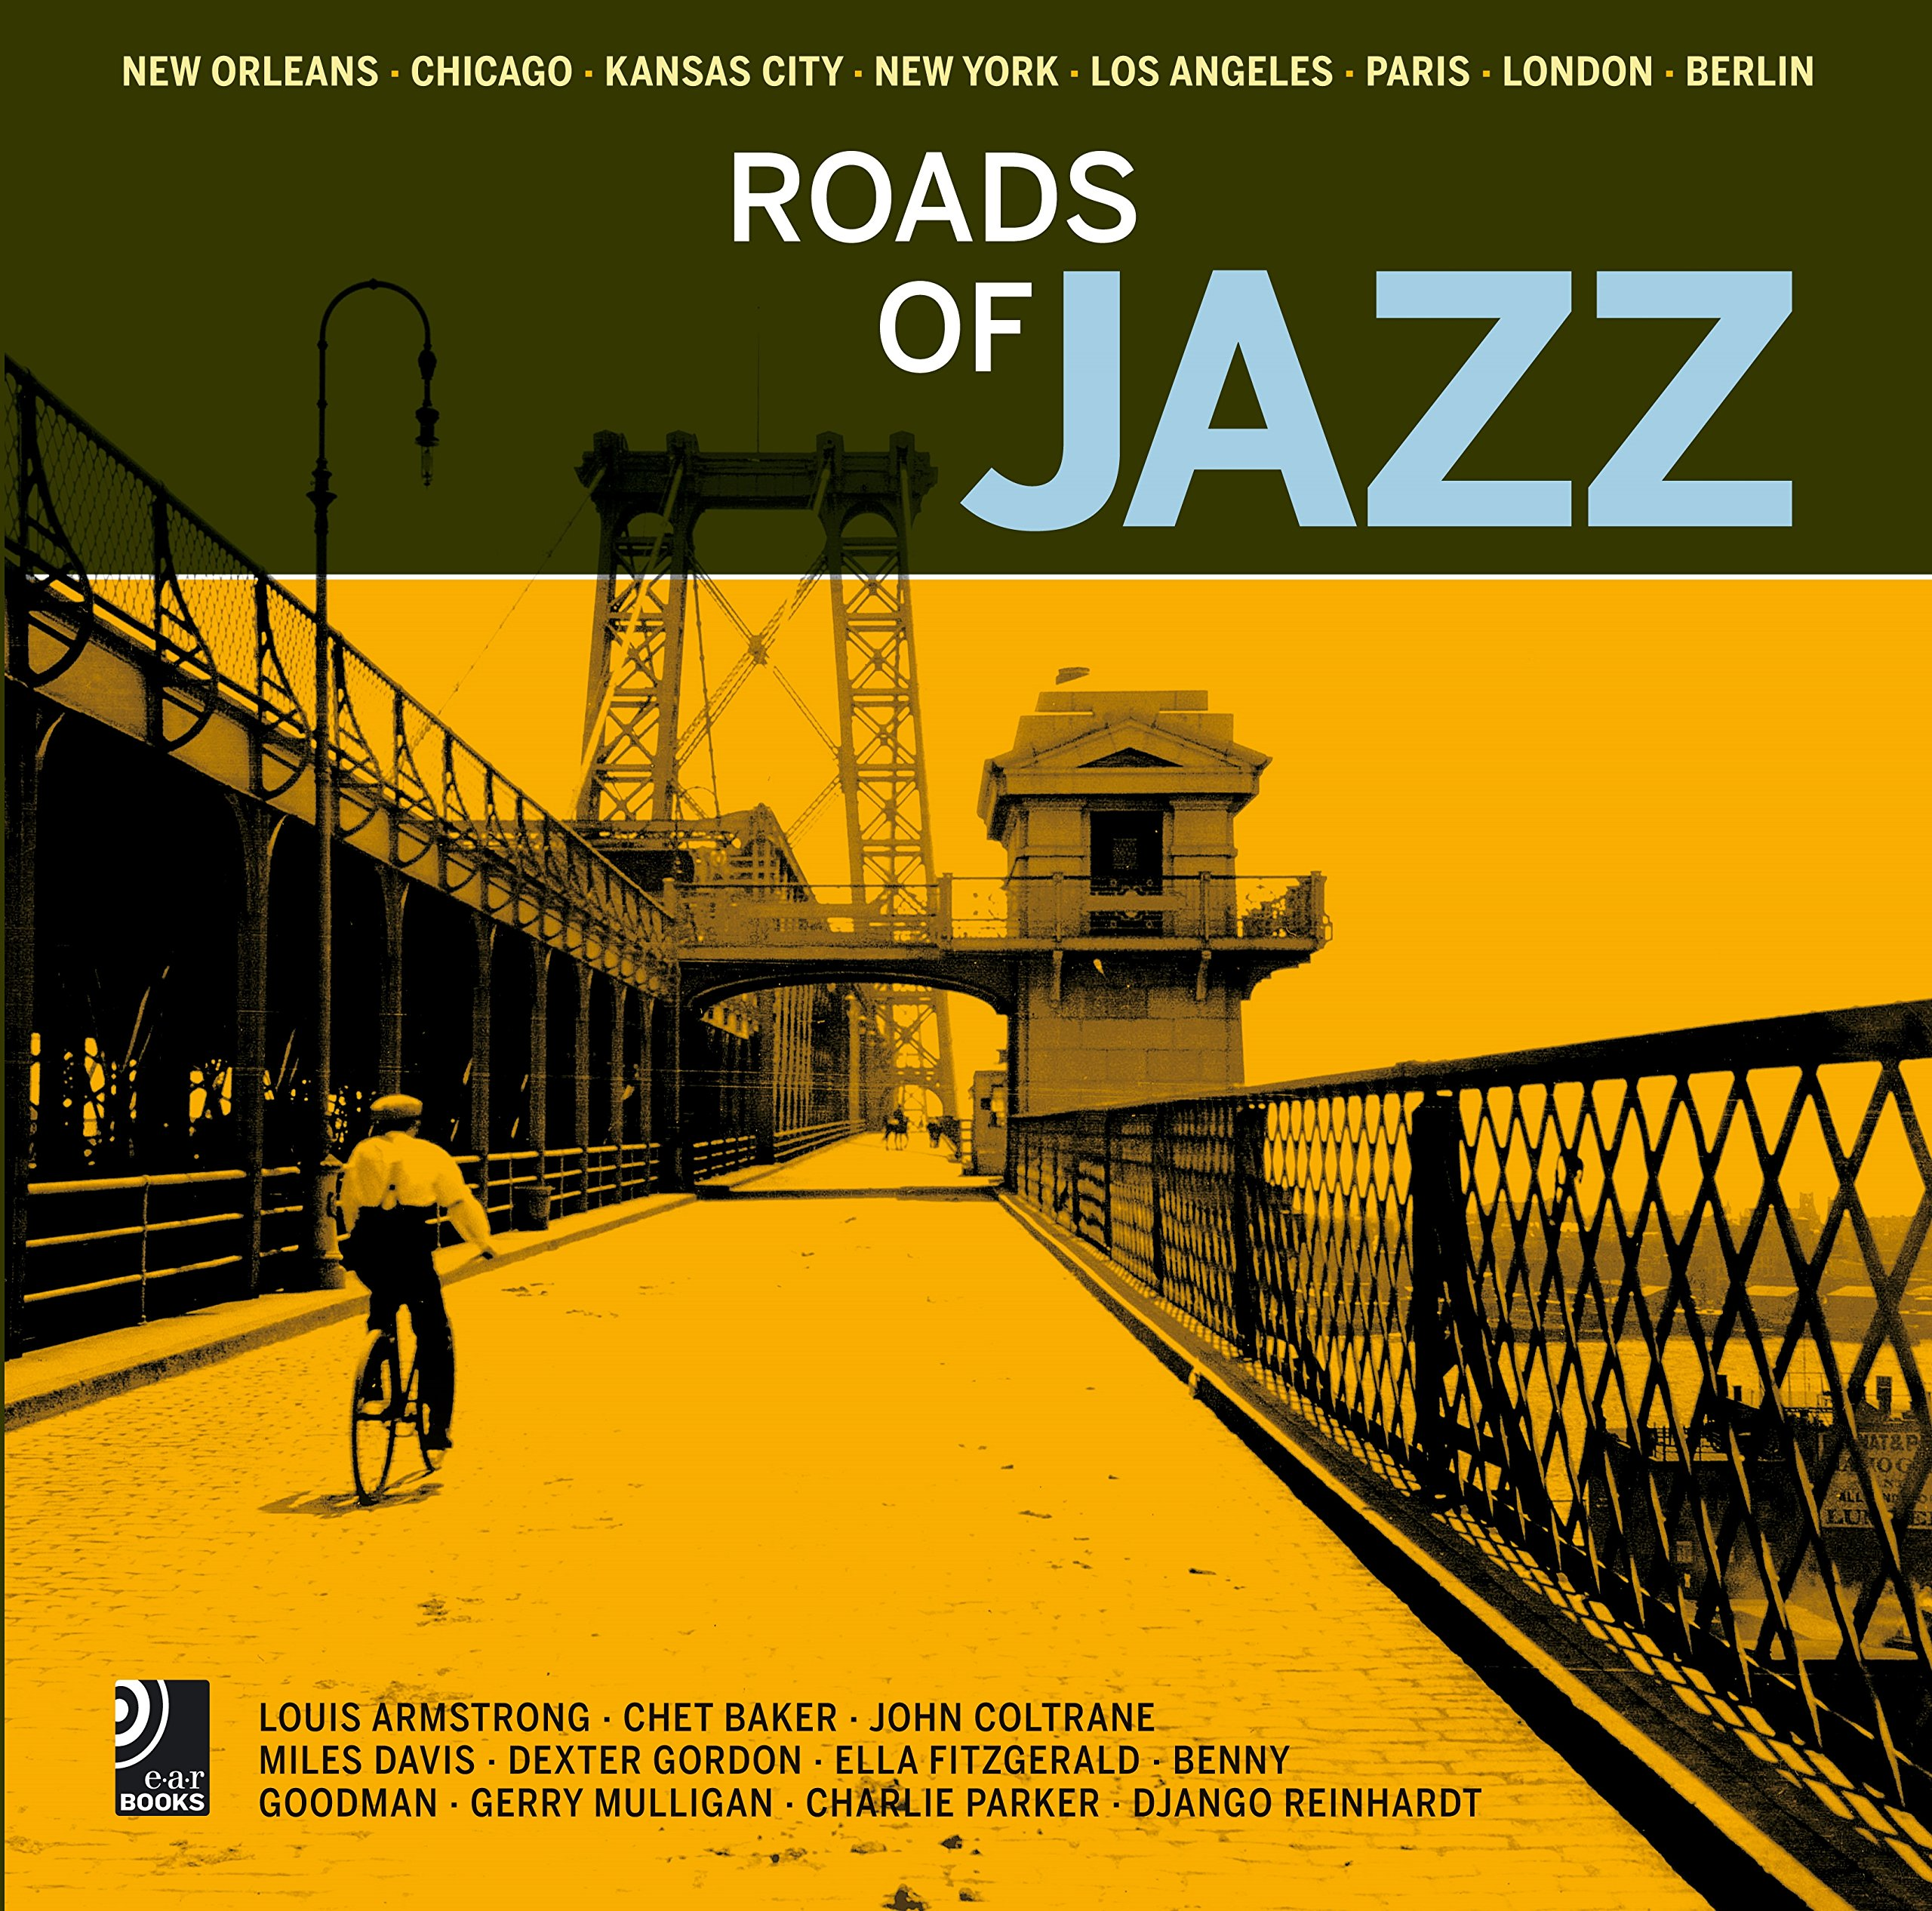 Roads of Jazz (Fotobildband inkl. 6 Musik-CDs)